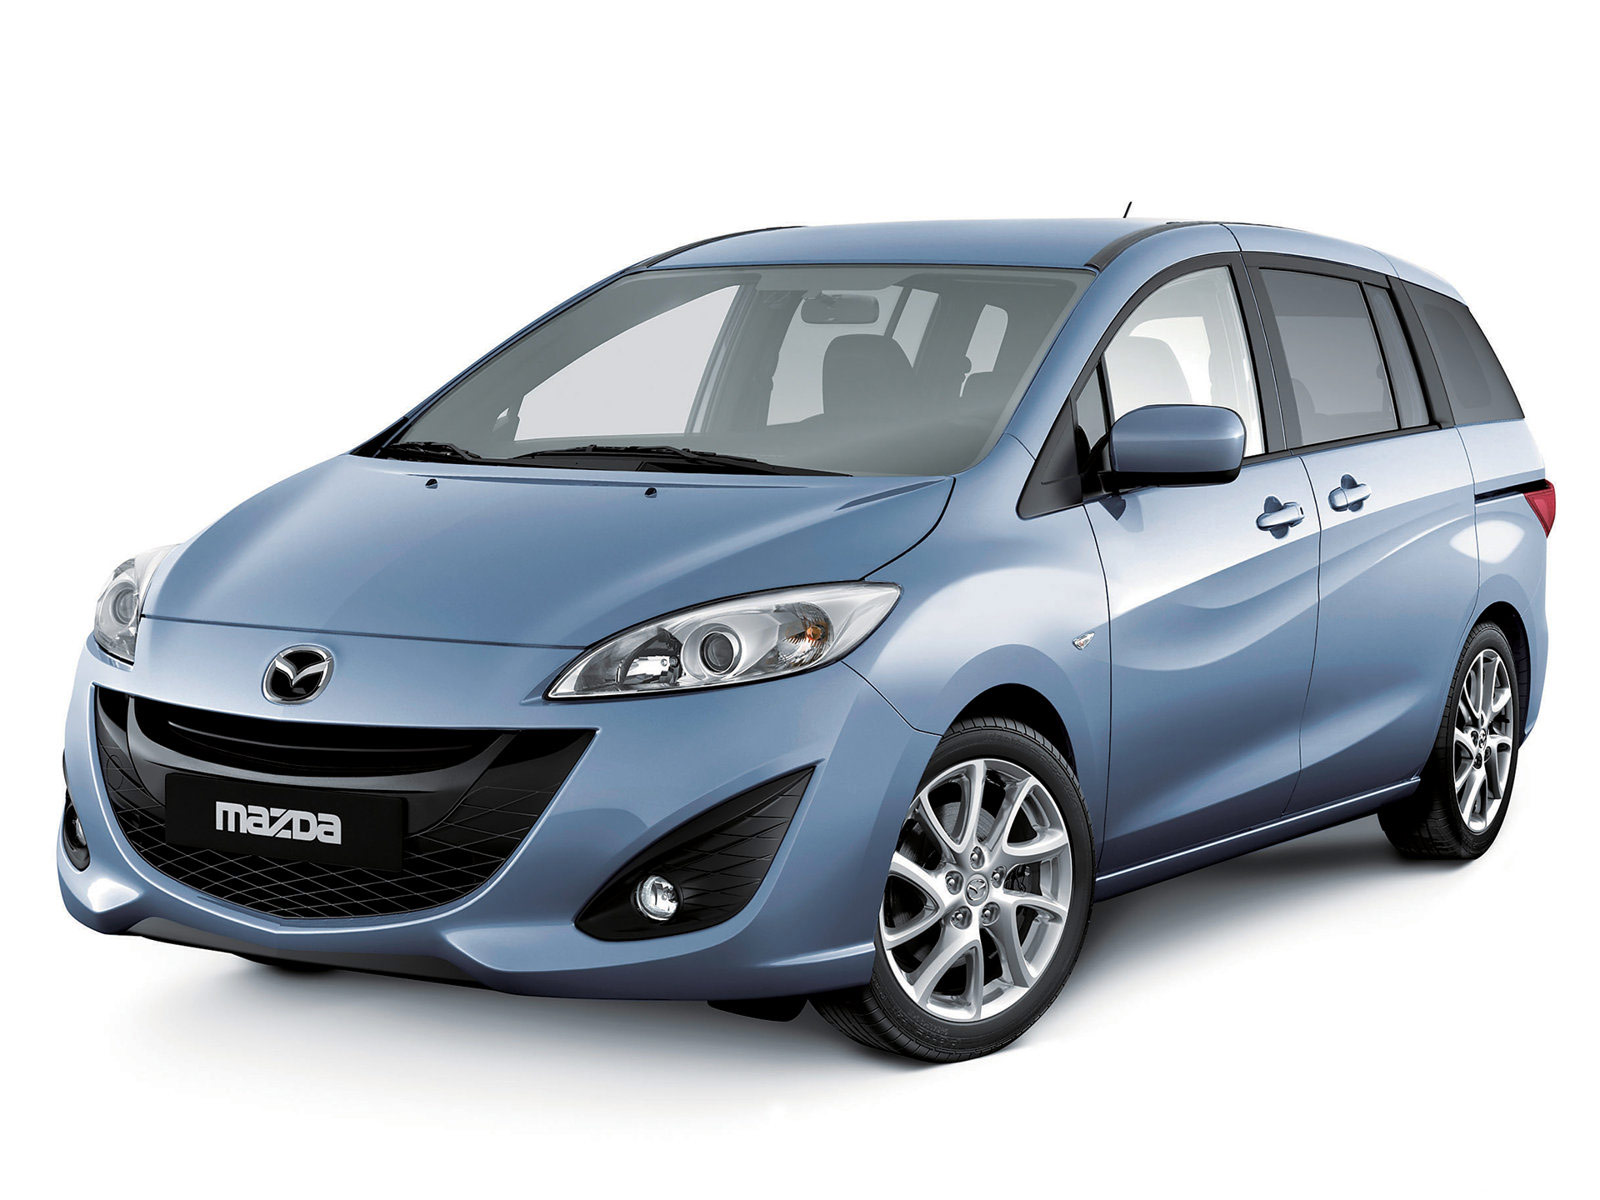 2011 mazda 5 japanese car pictures accident lawyers info. Black Bedroom Furniture Sets. Home Design Ideas